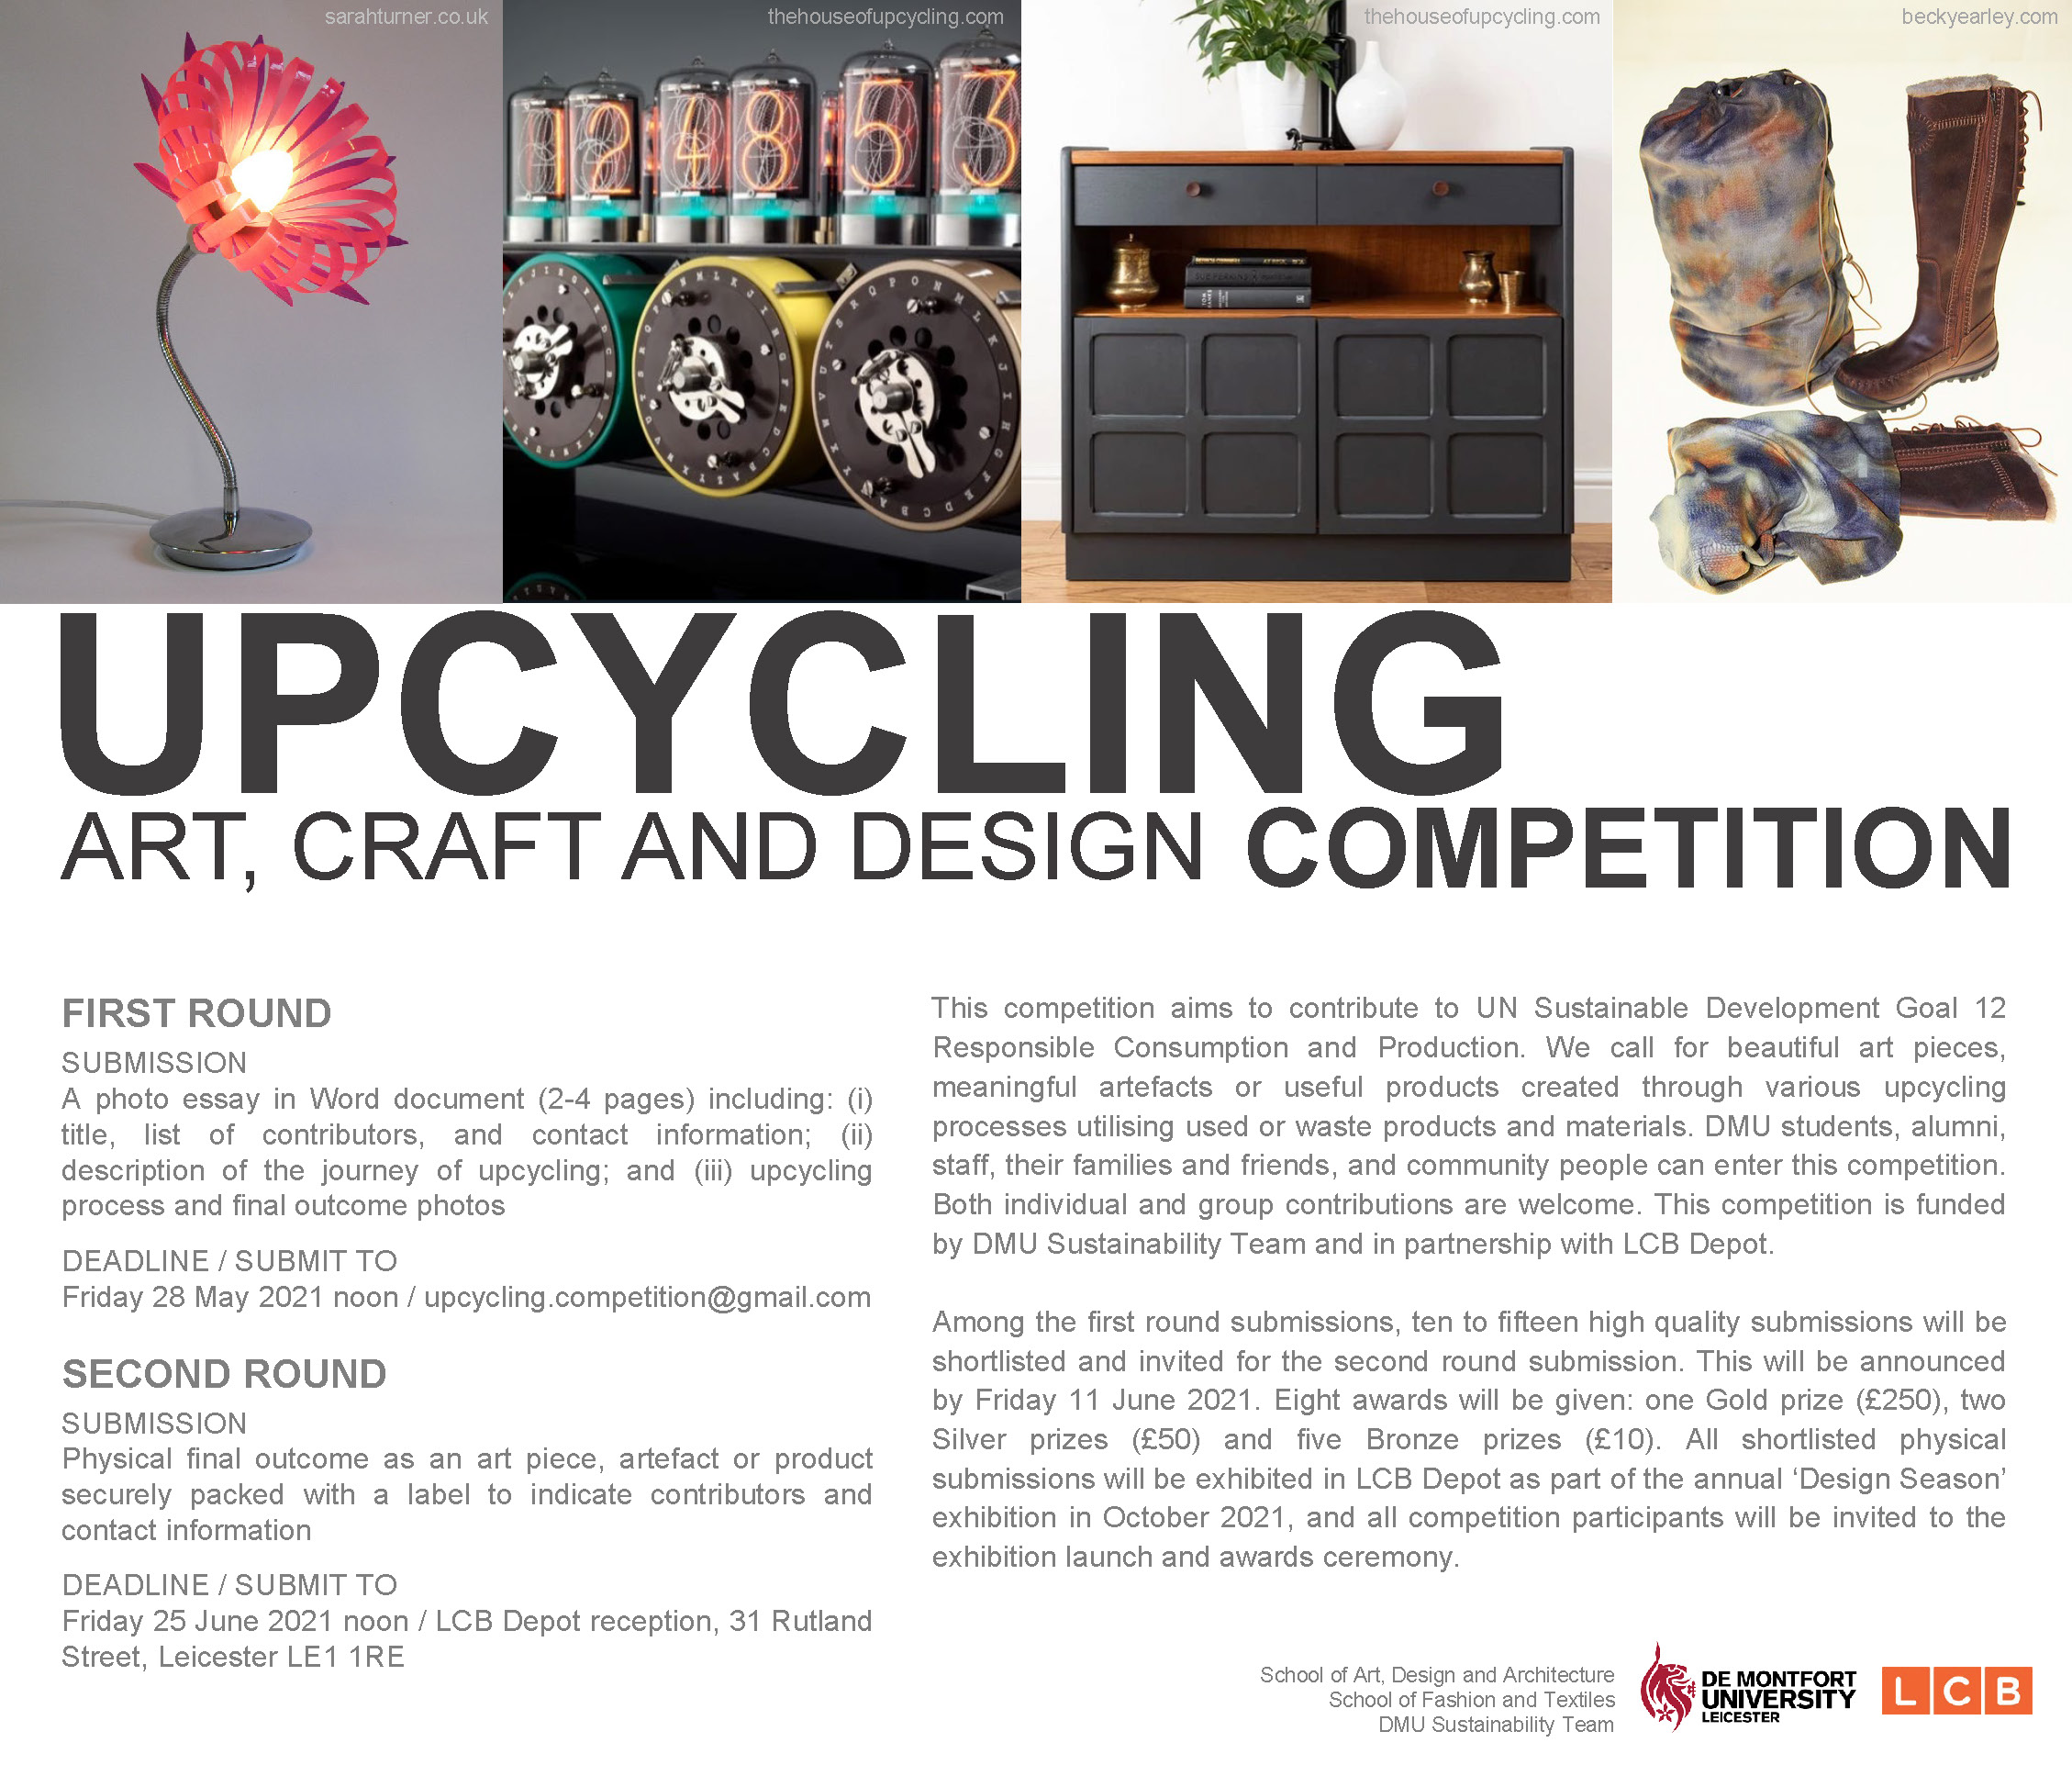 DMU/LCB upcycling competition